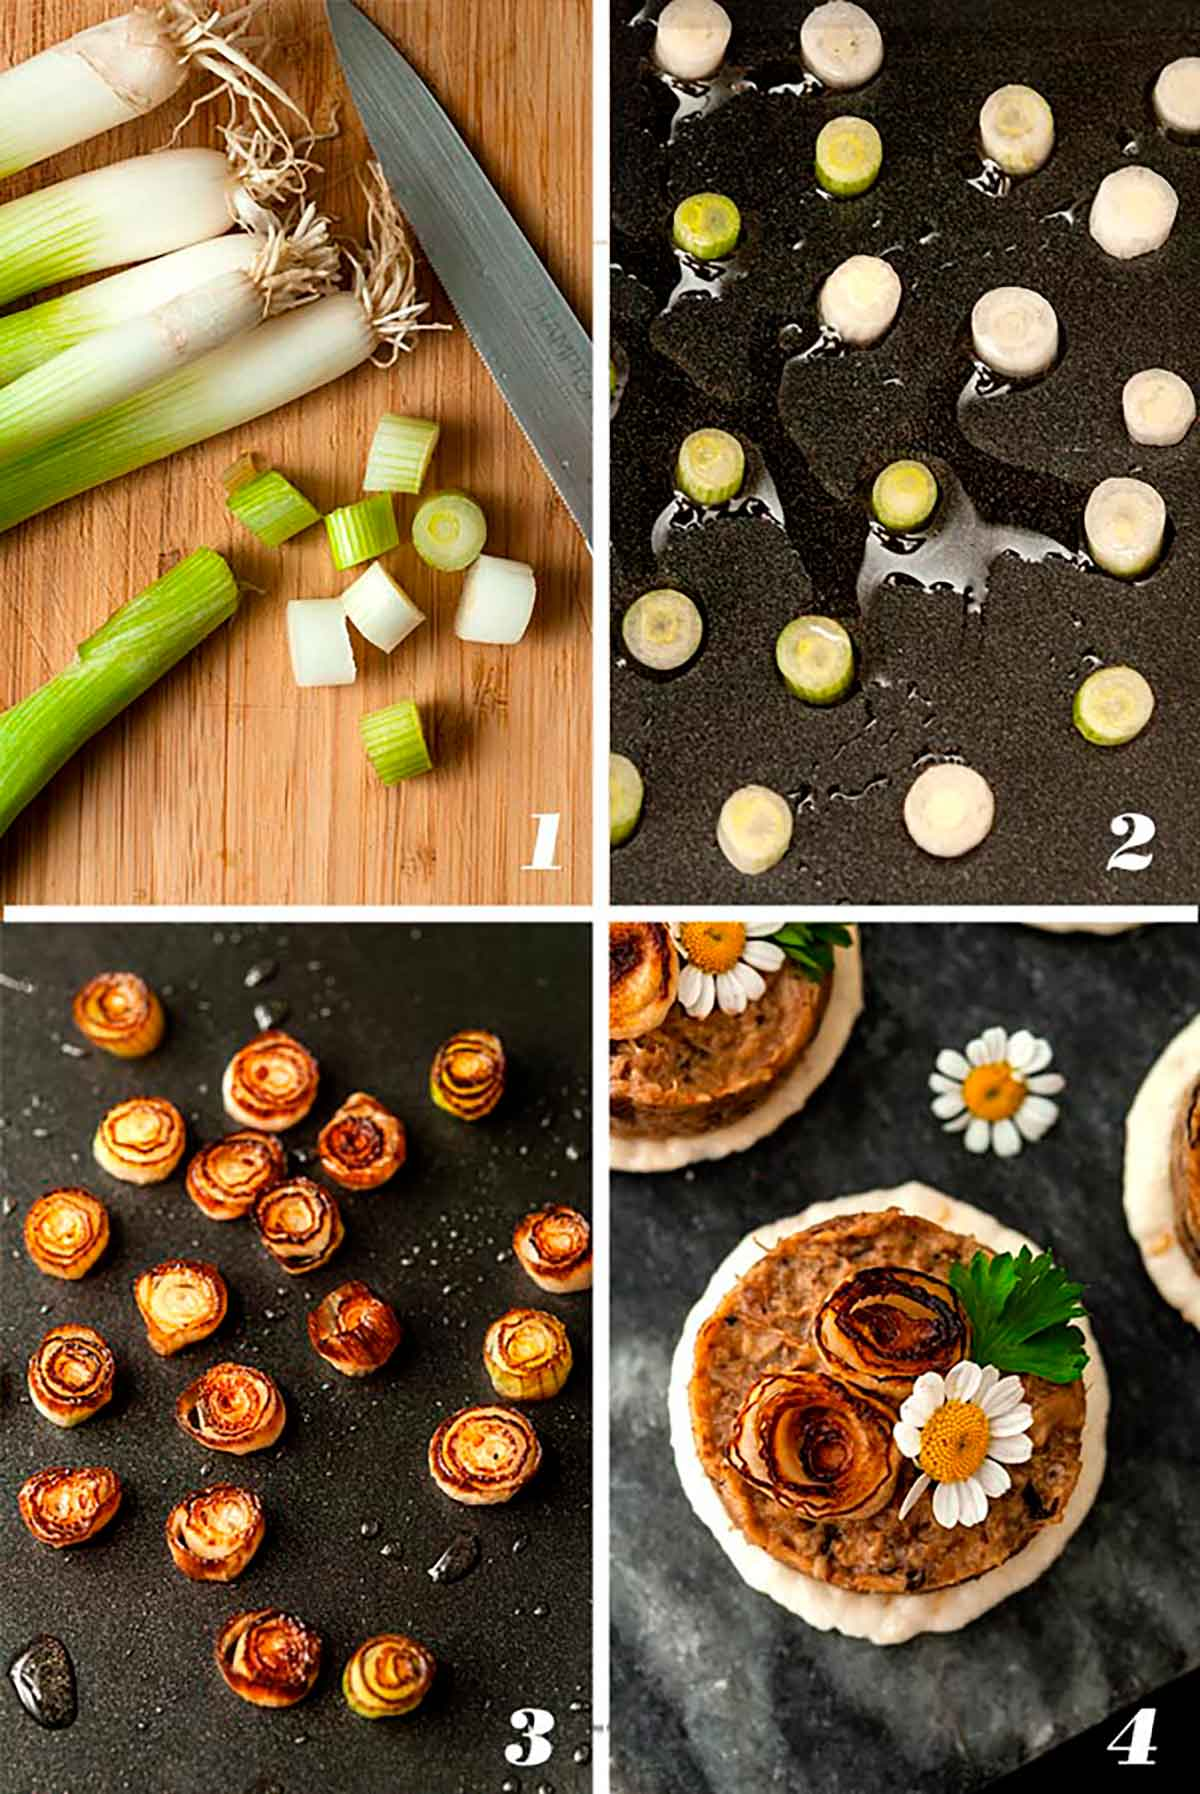 A collage of 4 numbered images showing how to make scallion roses.